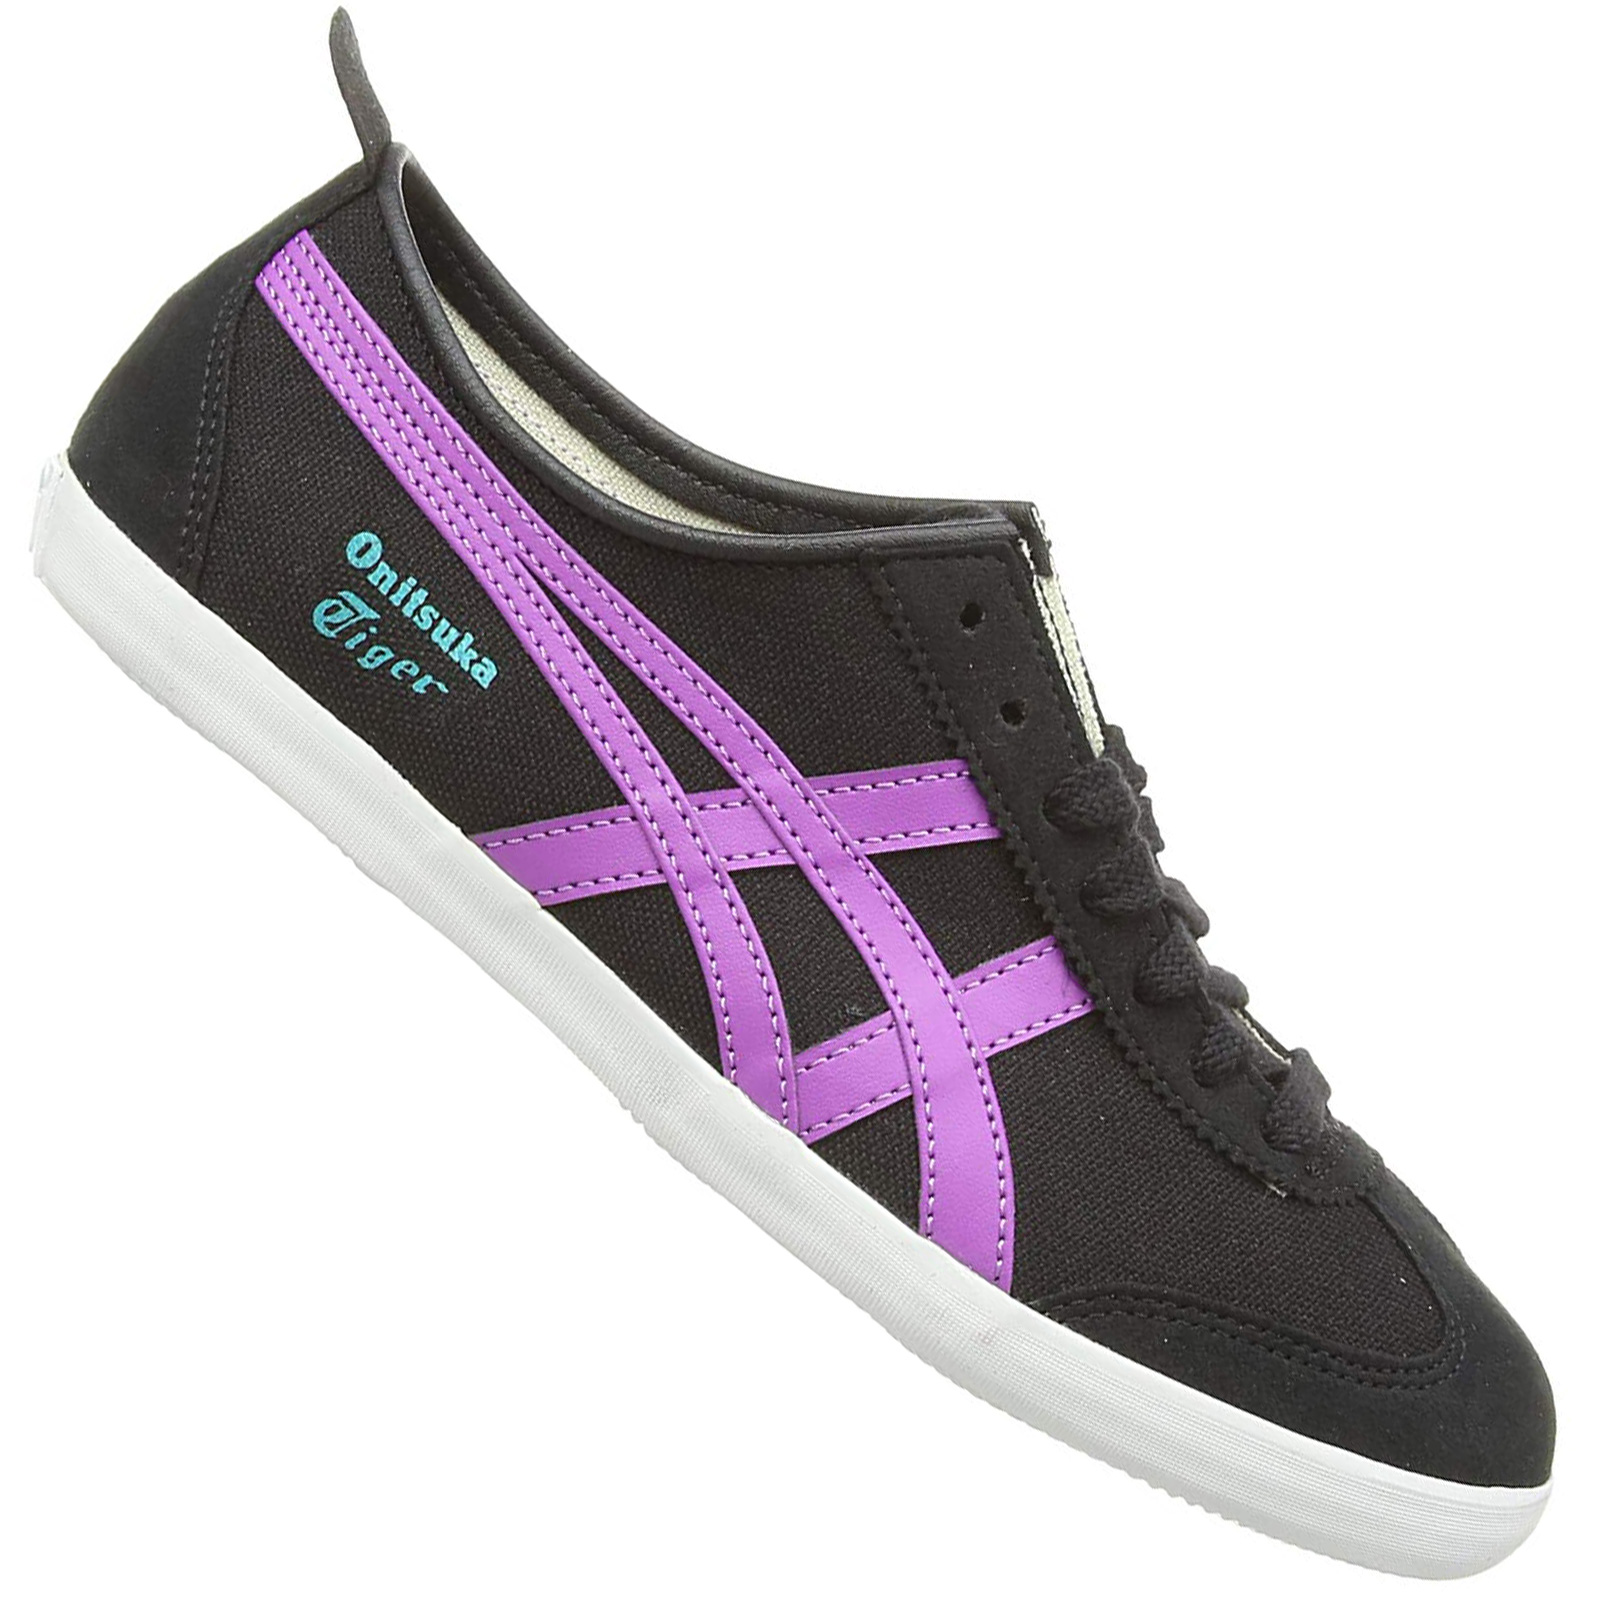 Details about Asics Onitsuka Tiger Mexico 66 Sneaker Women's Girls' Shoes Canvas Black Purple